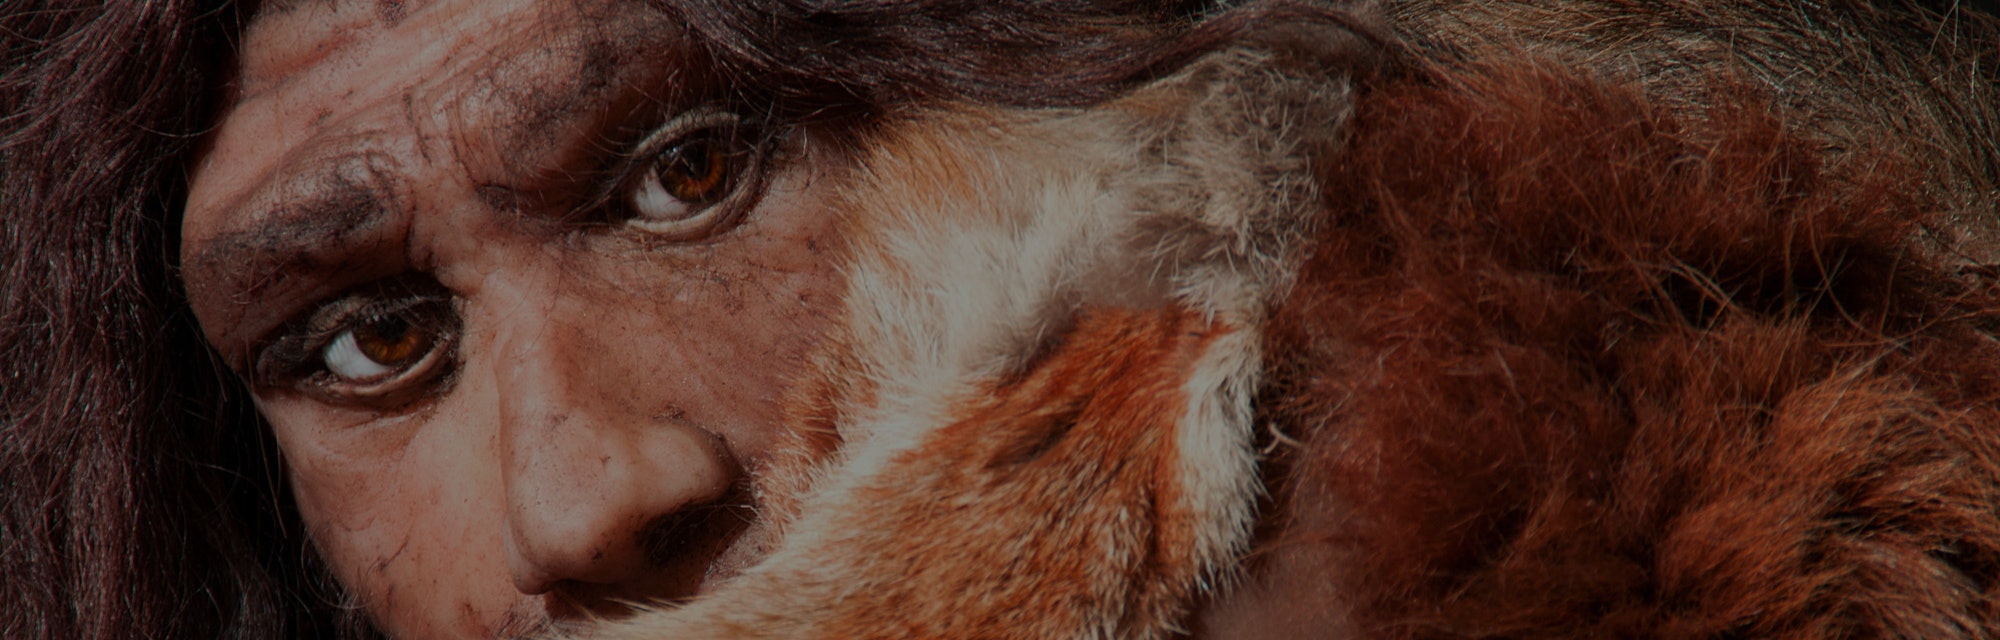 Close-up of a Neanderthal.